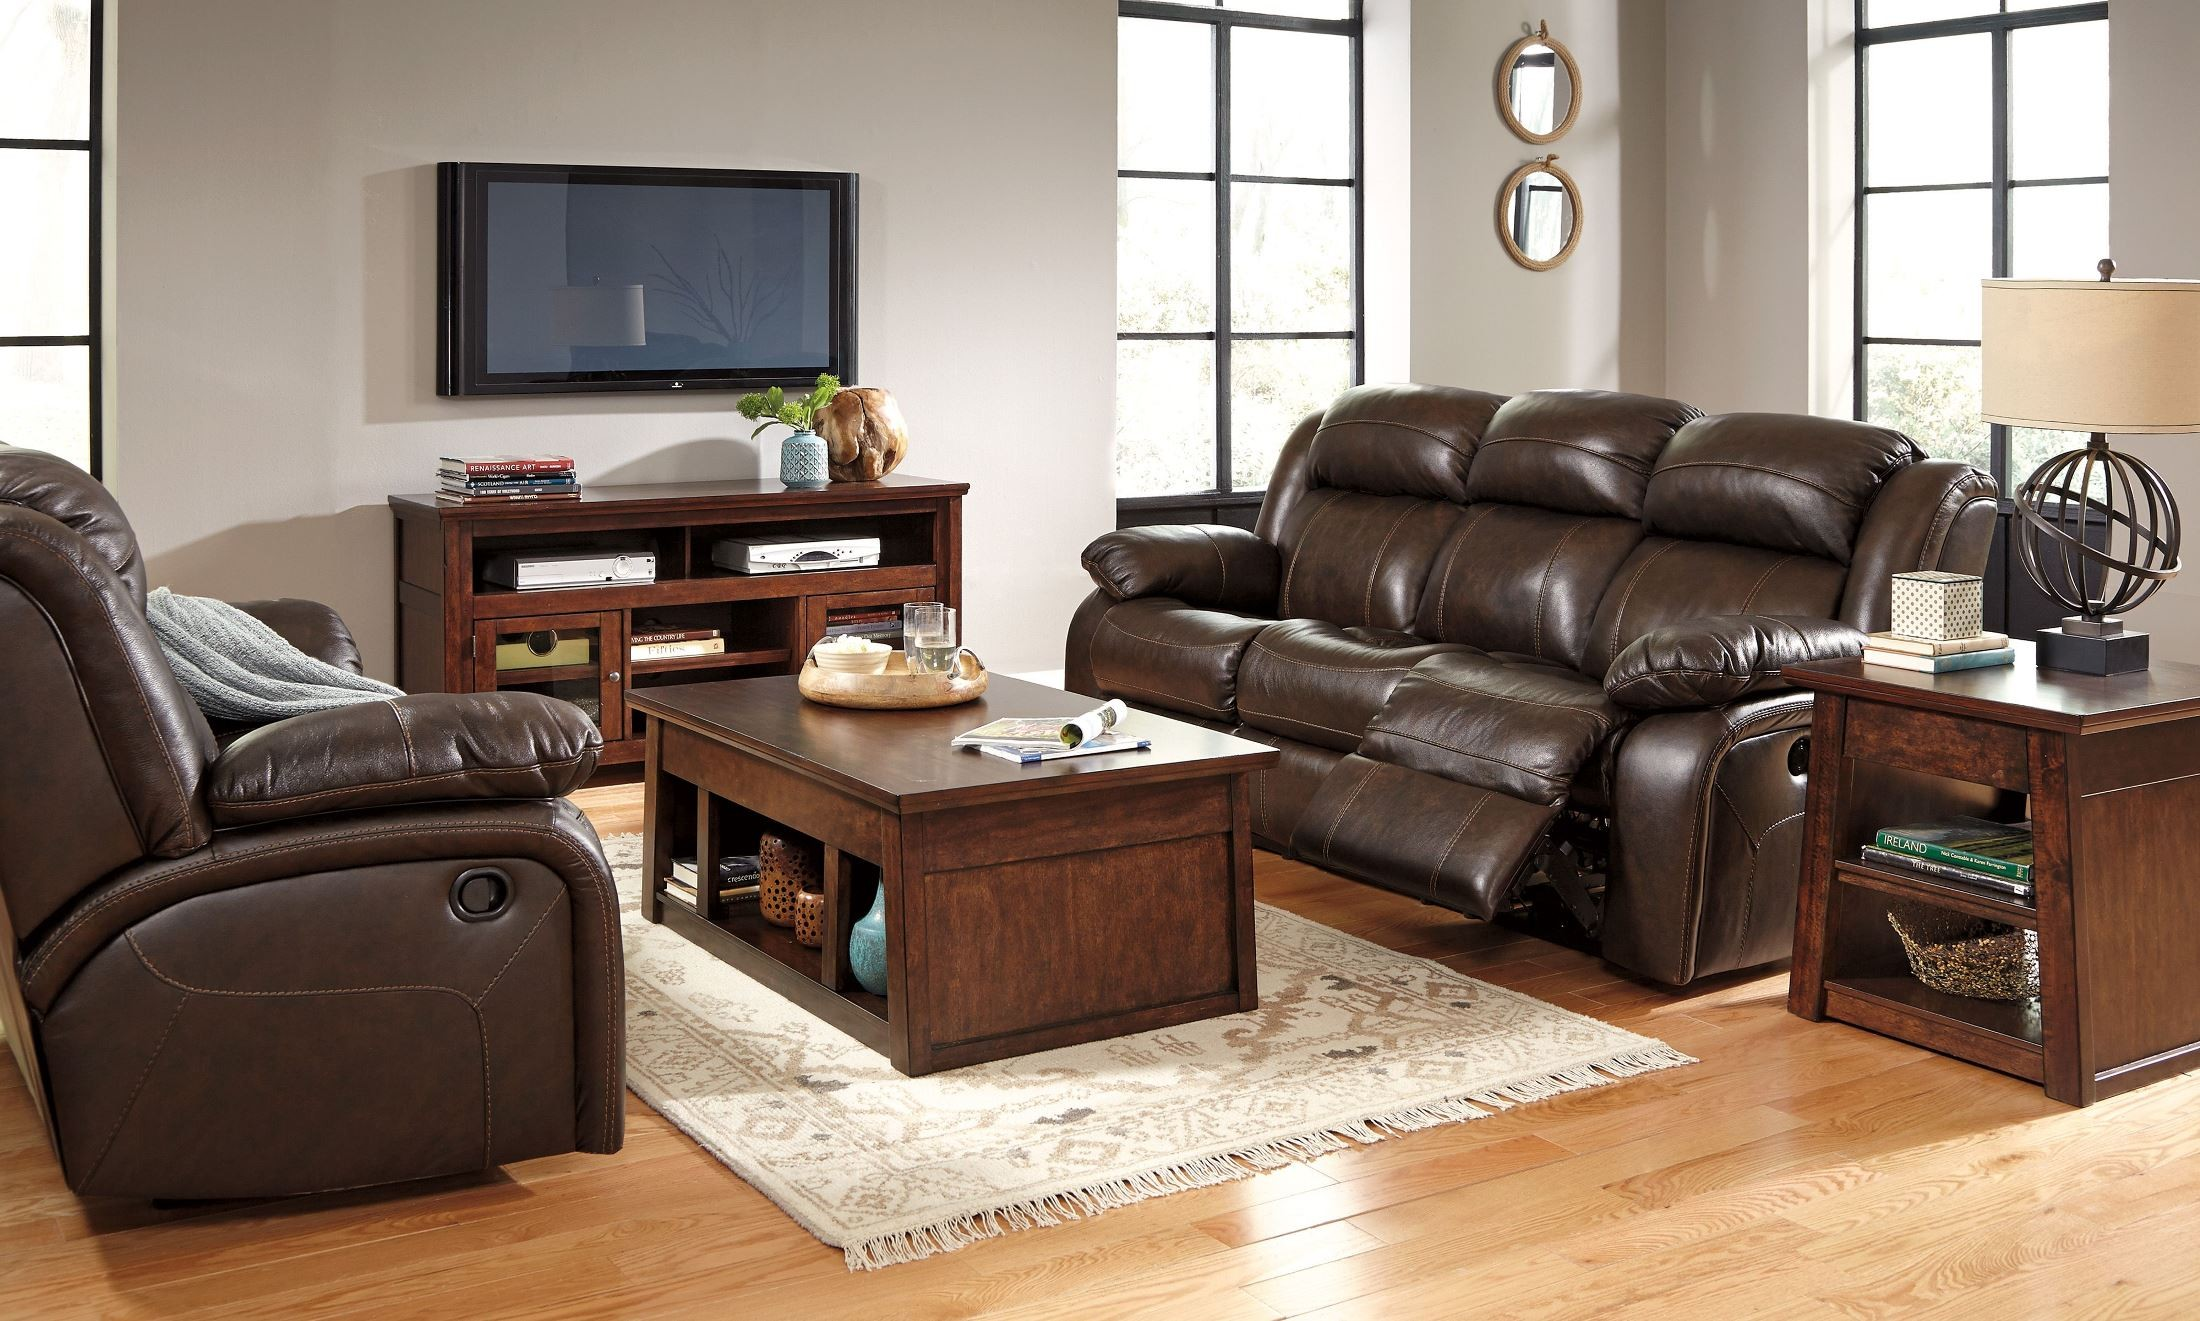 Branton Antique Power Reclining Sofa From Ashley U7190187 Coleman Furniture